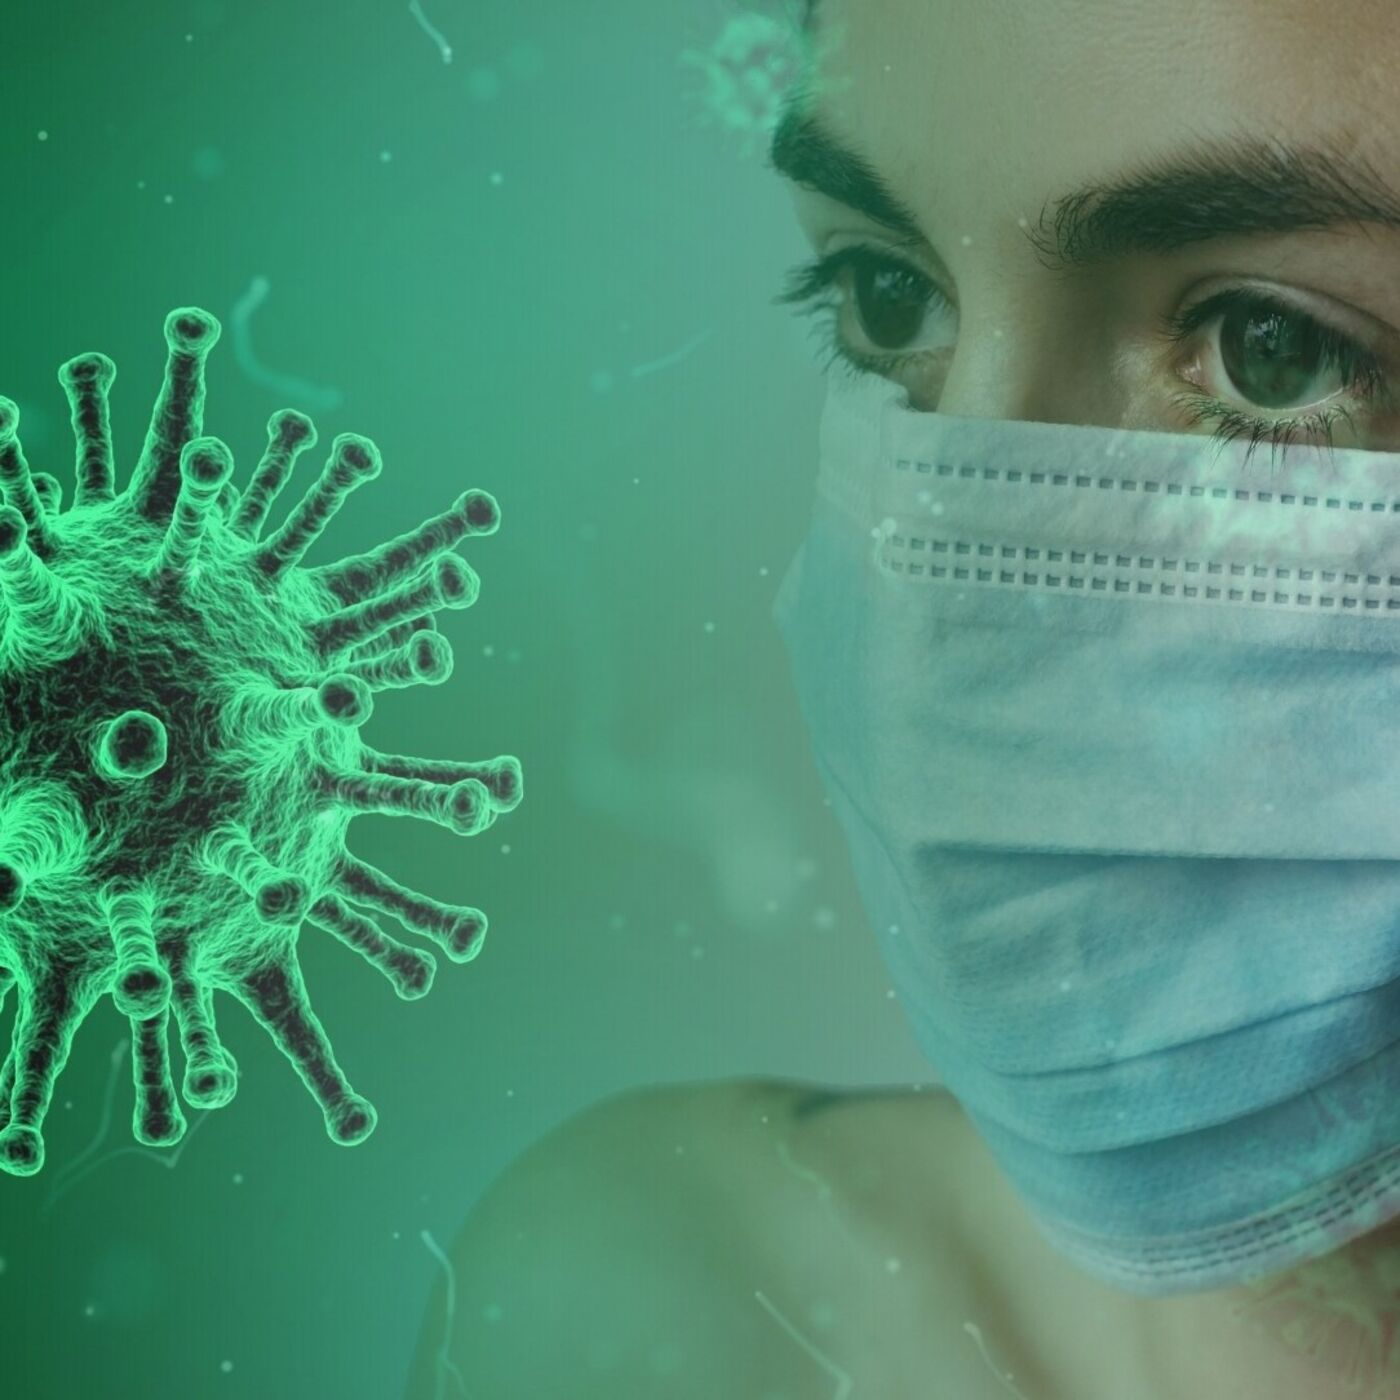 Ep. 008: Is It Safe to Get Your Eyes Examined During the COVID-19 Pandemic? - with Laura Kunze, MBA, COE